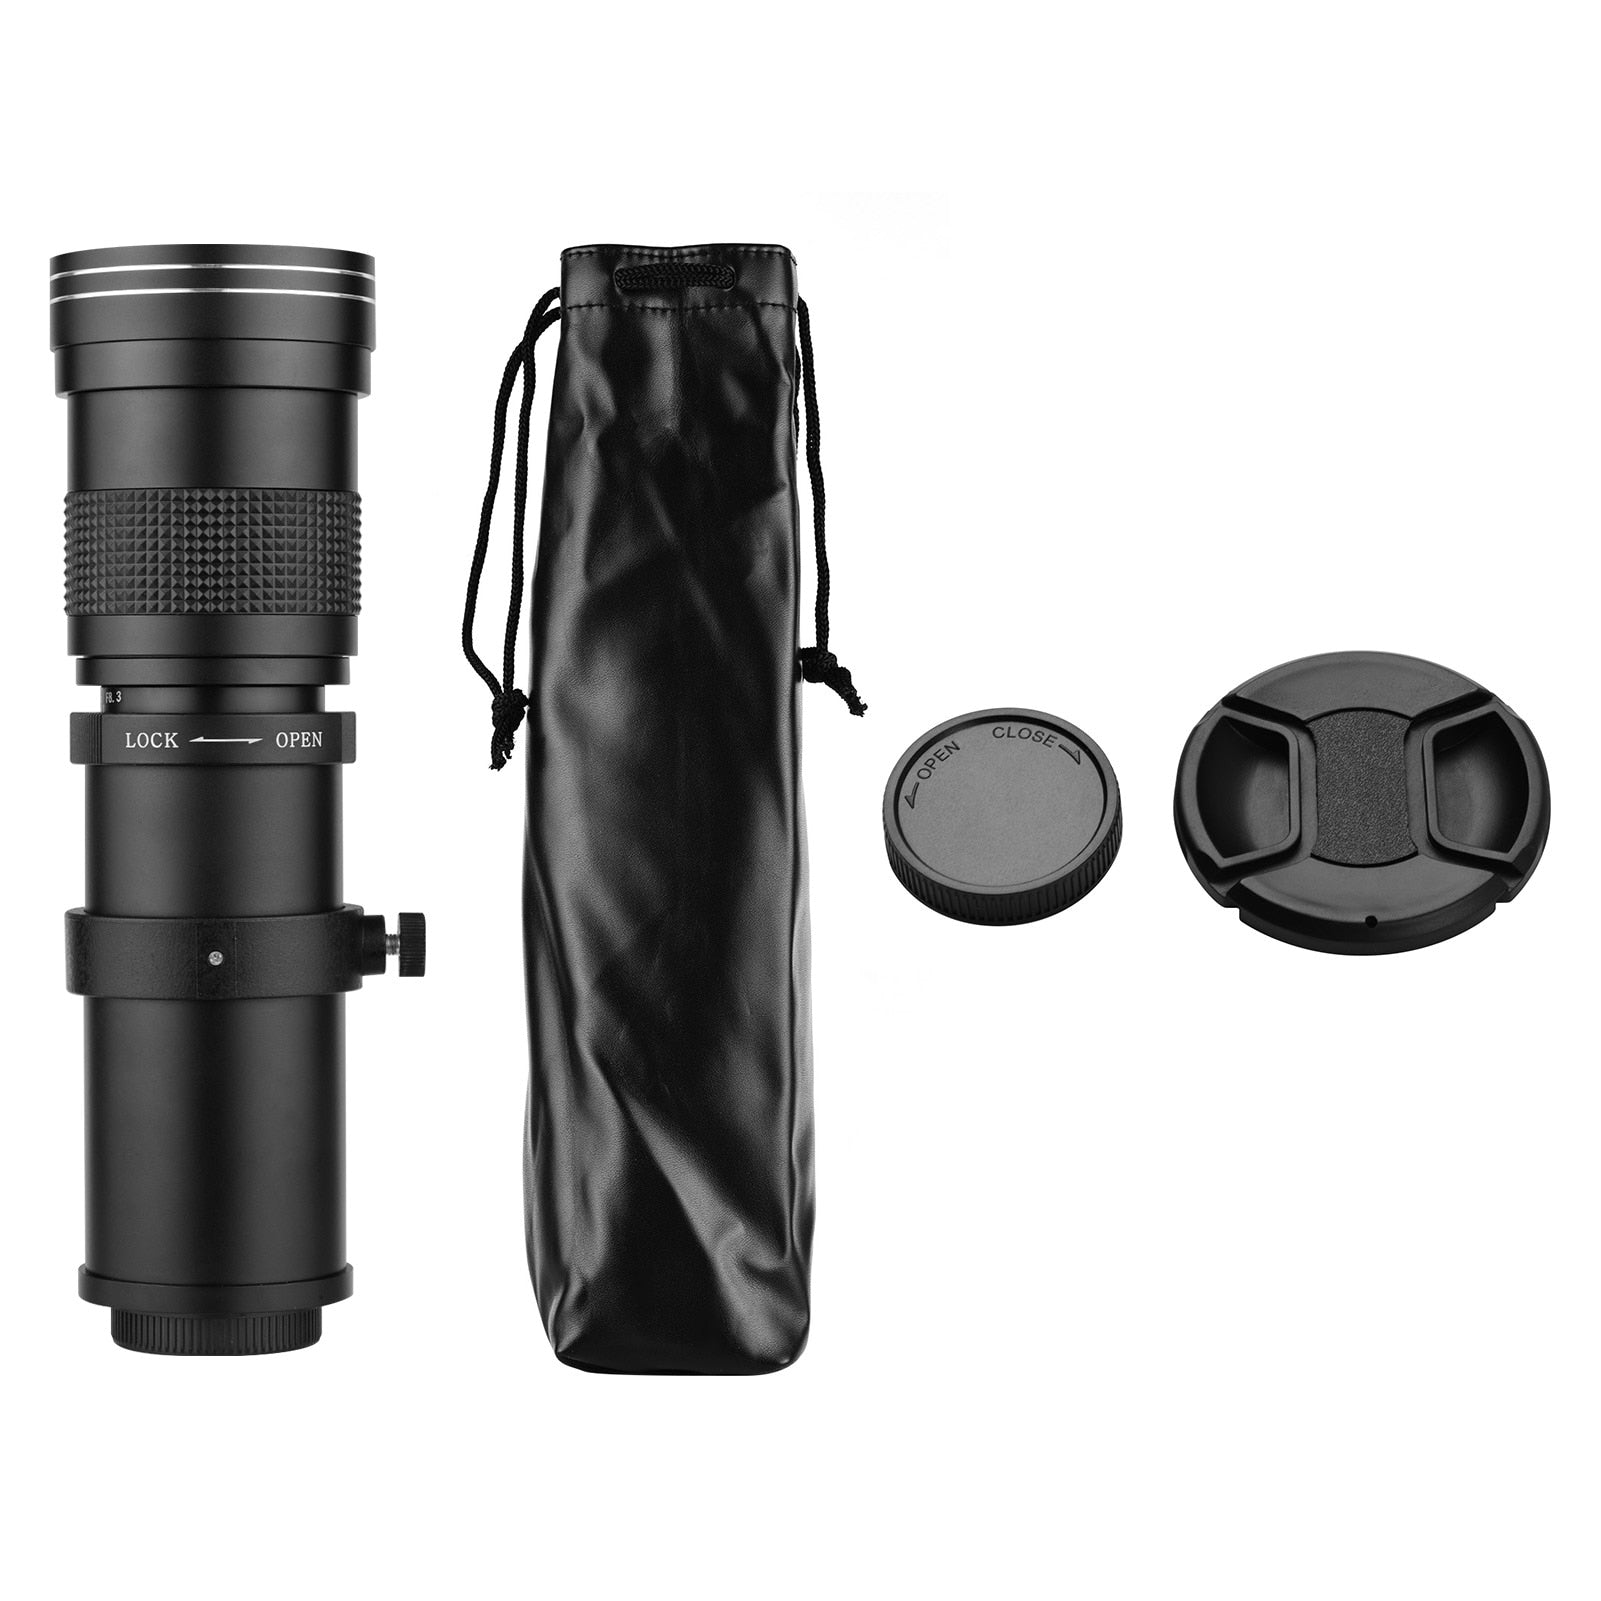 Super Telephoto Zoom Lens